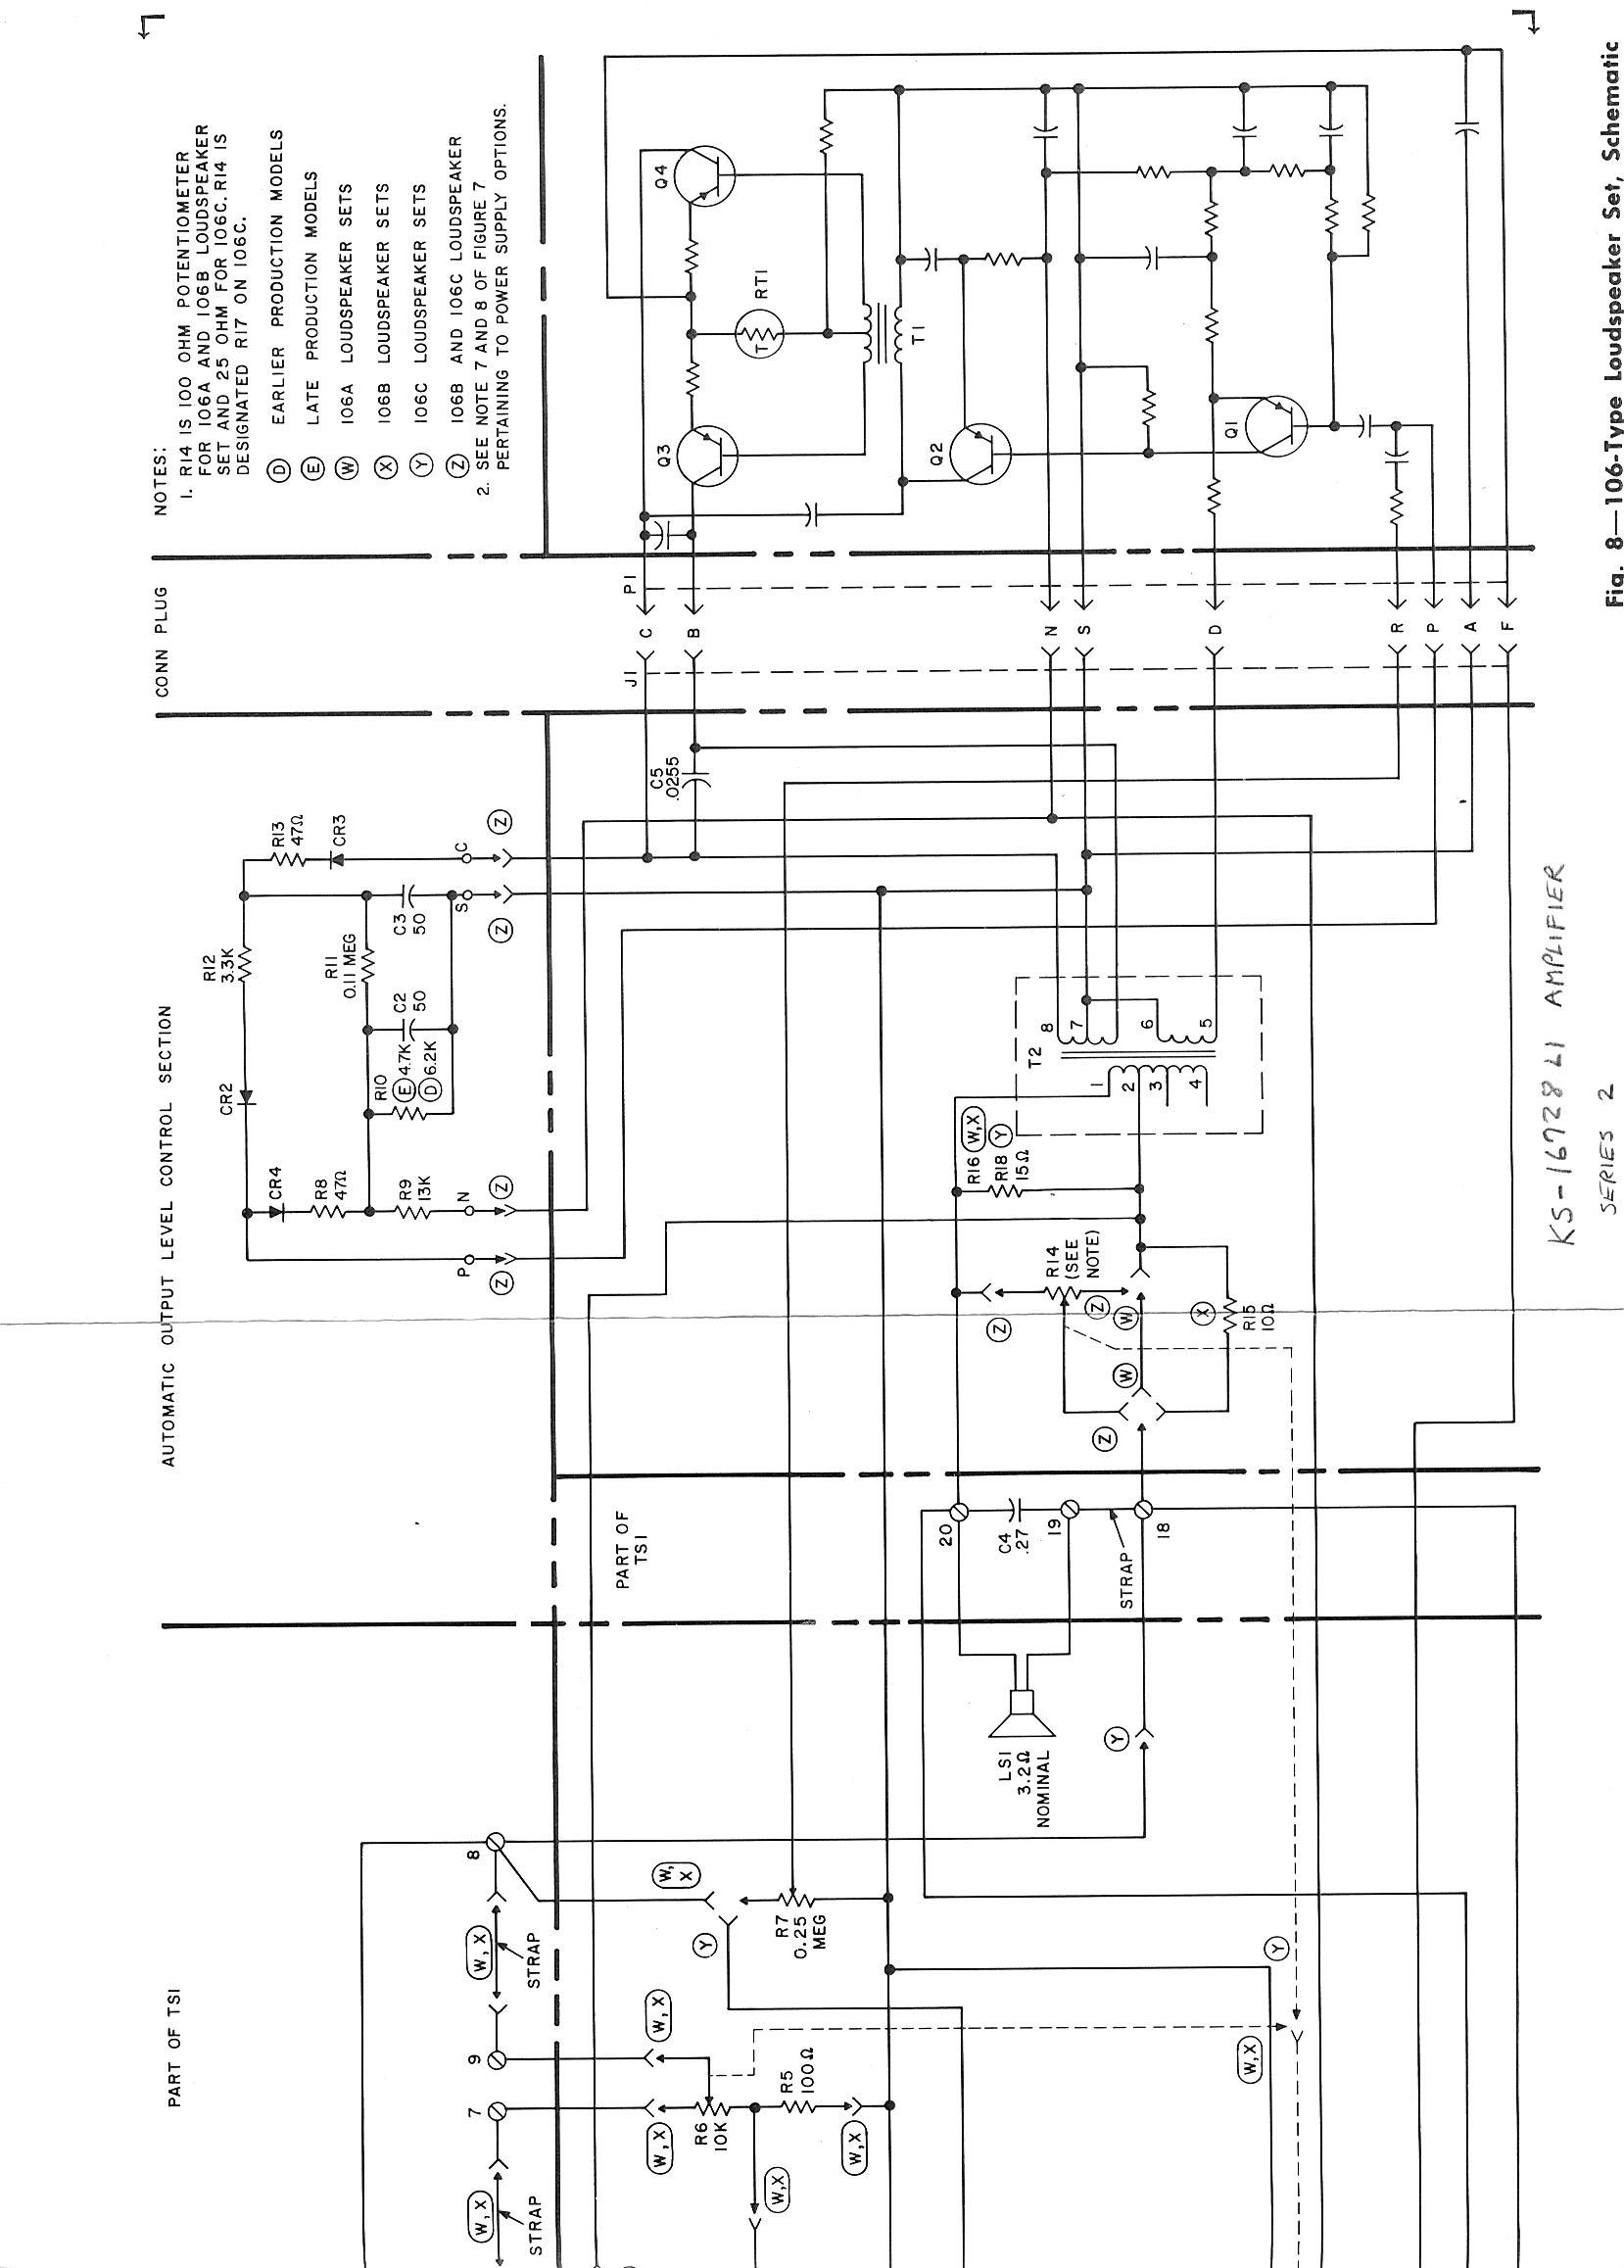 automatic electric payphone wiring google search wiring crazy wiring diagram automatic electric payphone wiring google search [ 1658 x 2315 Pixel ]